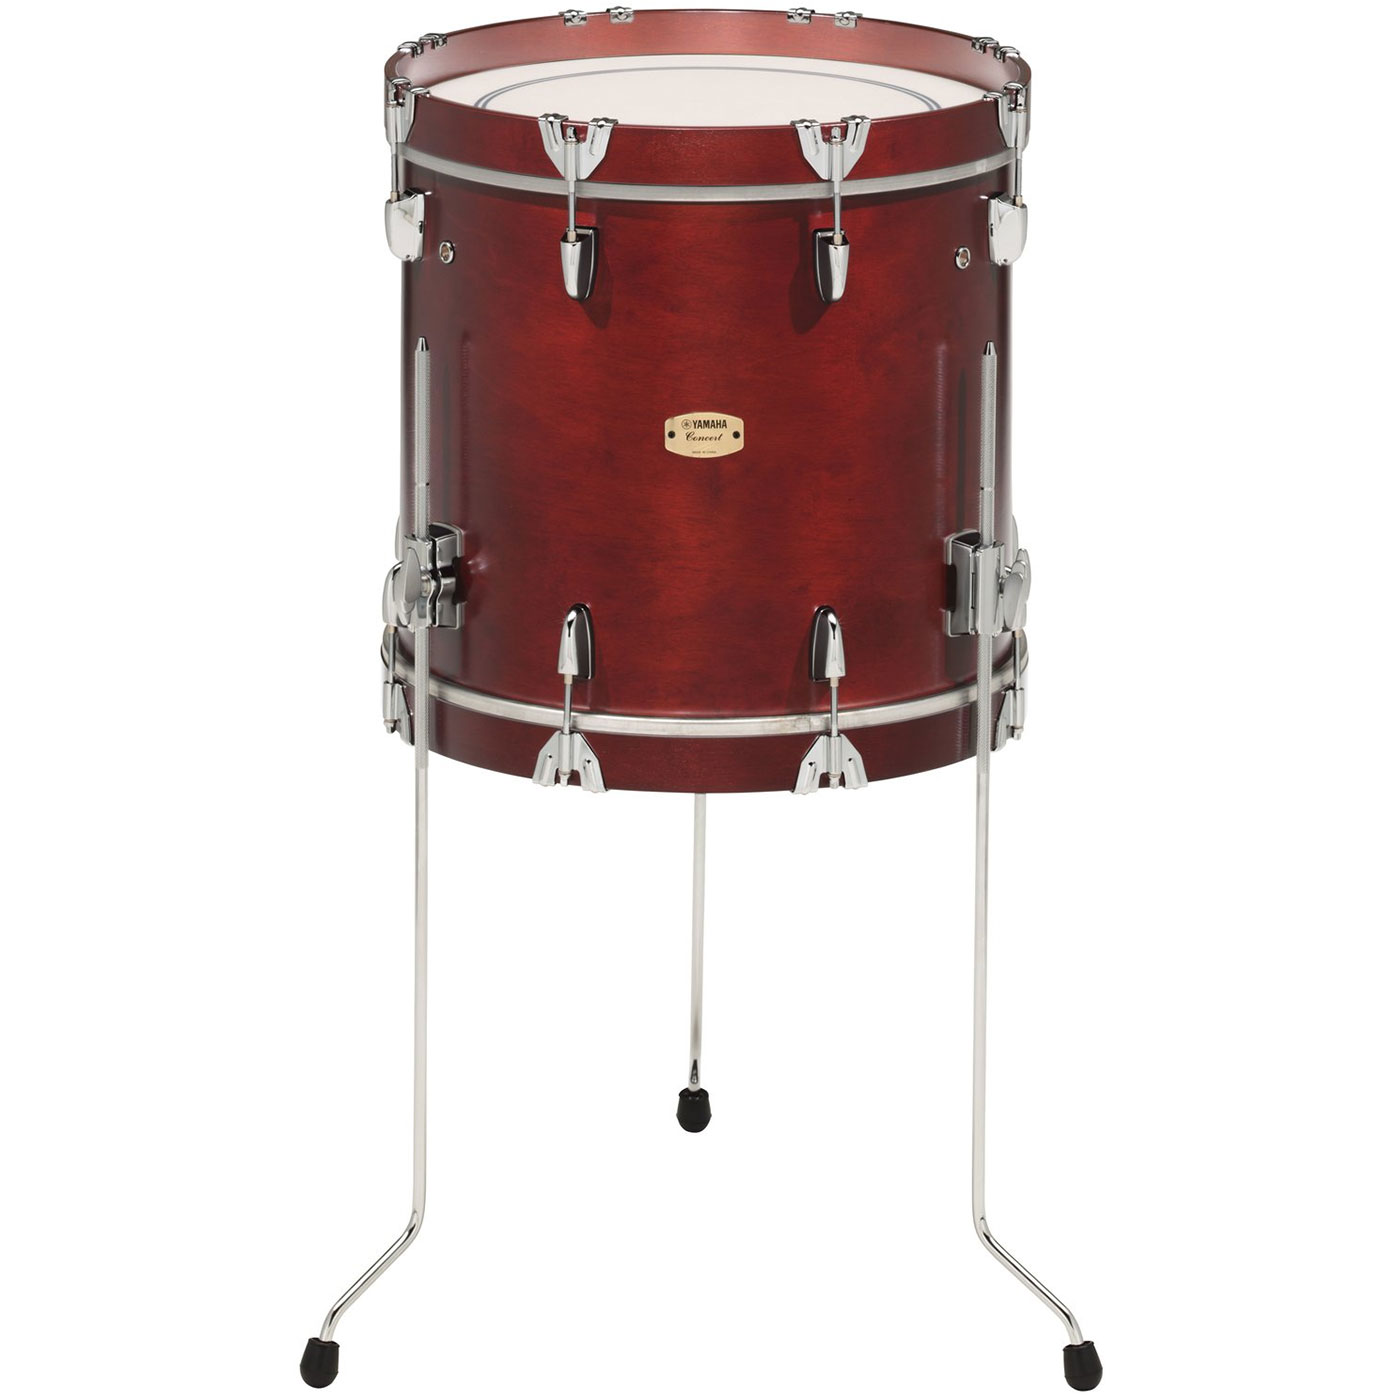 "Yamaha 24"" x 16"" 9000 Series Impact Drum in Darkwood Stain"